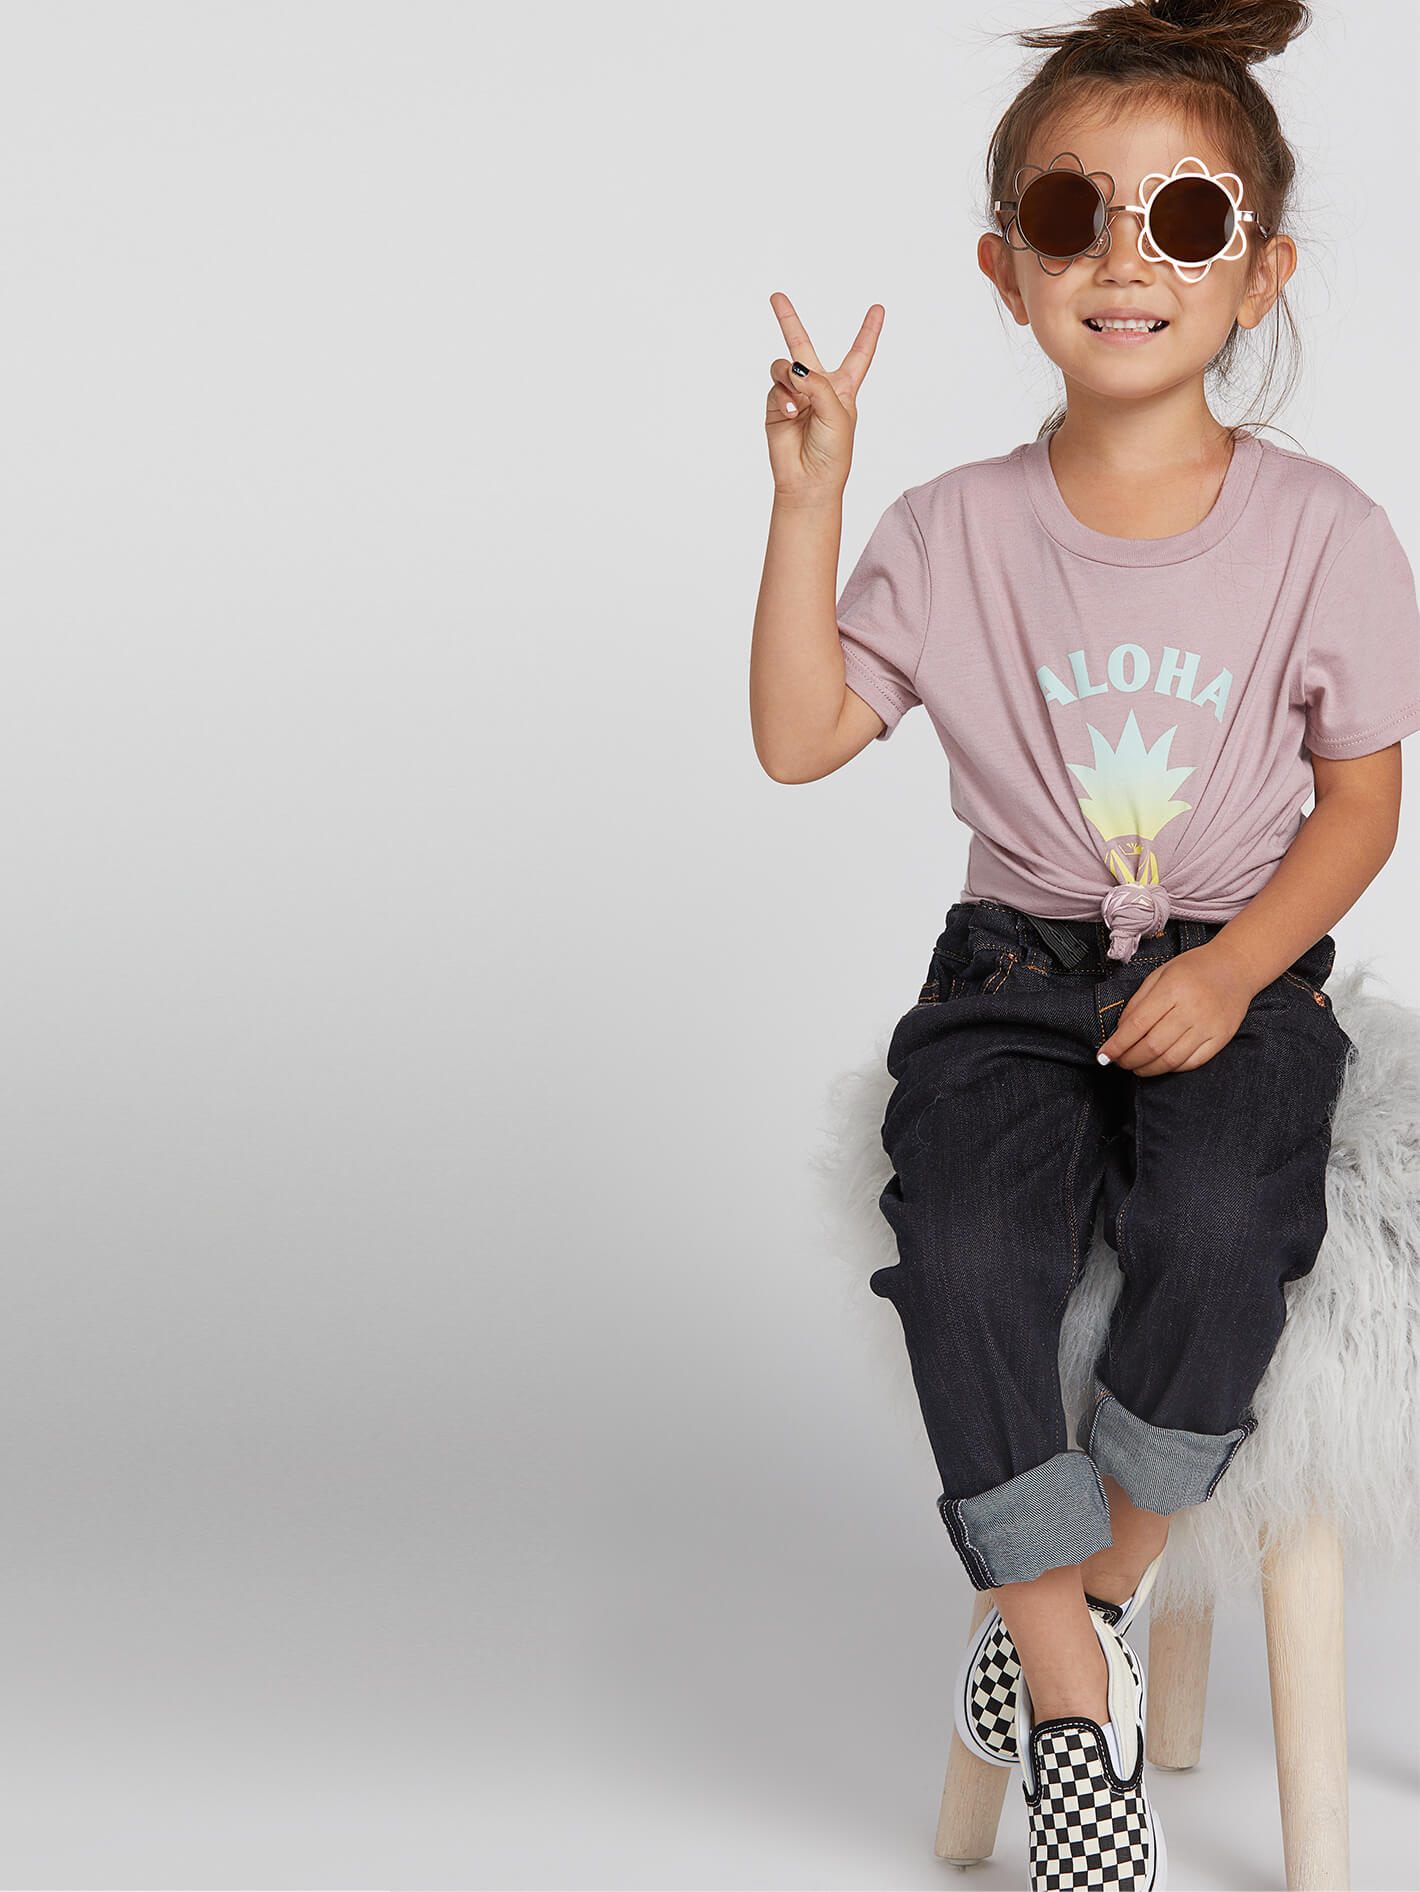 Volcom Little Girls Wav-Ello Tee - Faded Mauve - Faded Mauve - 2T